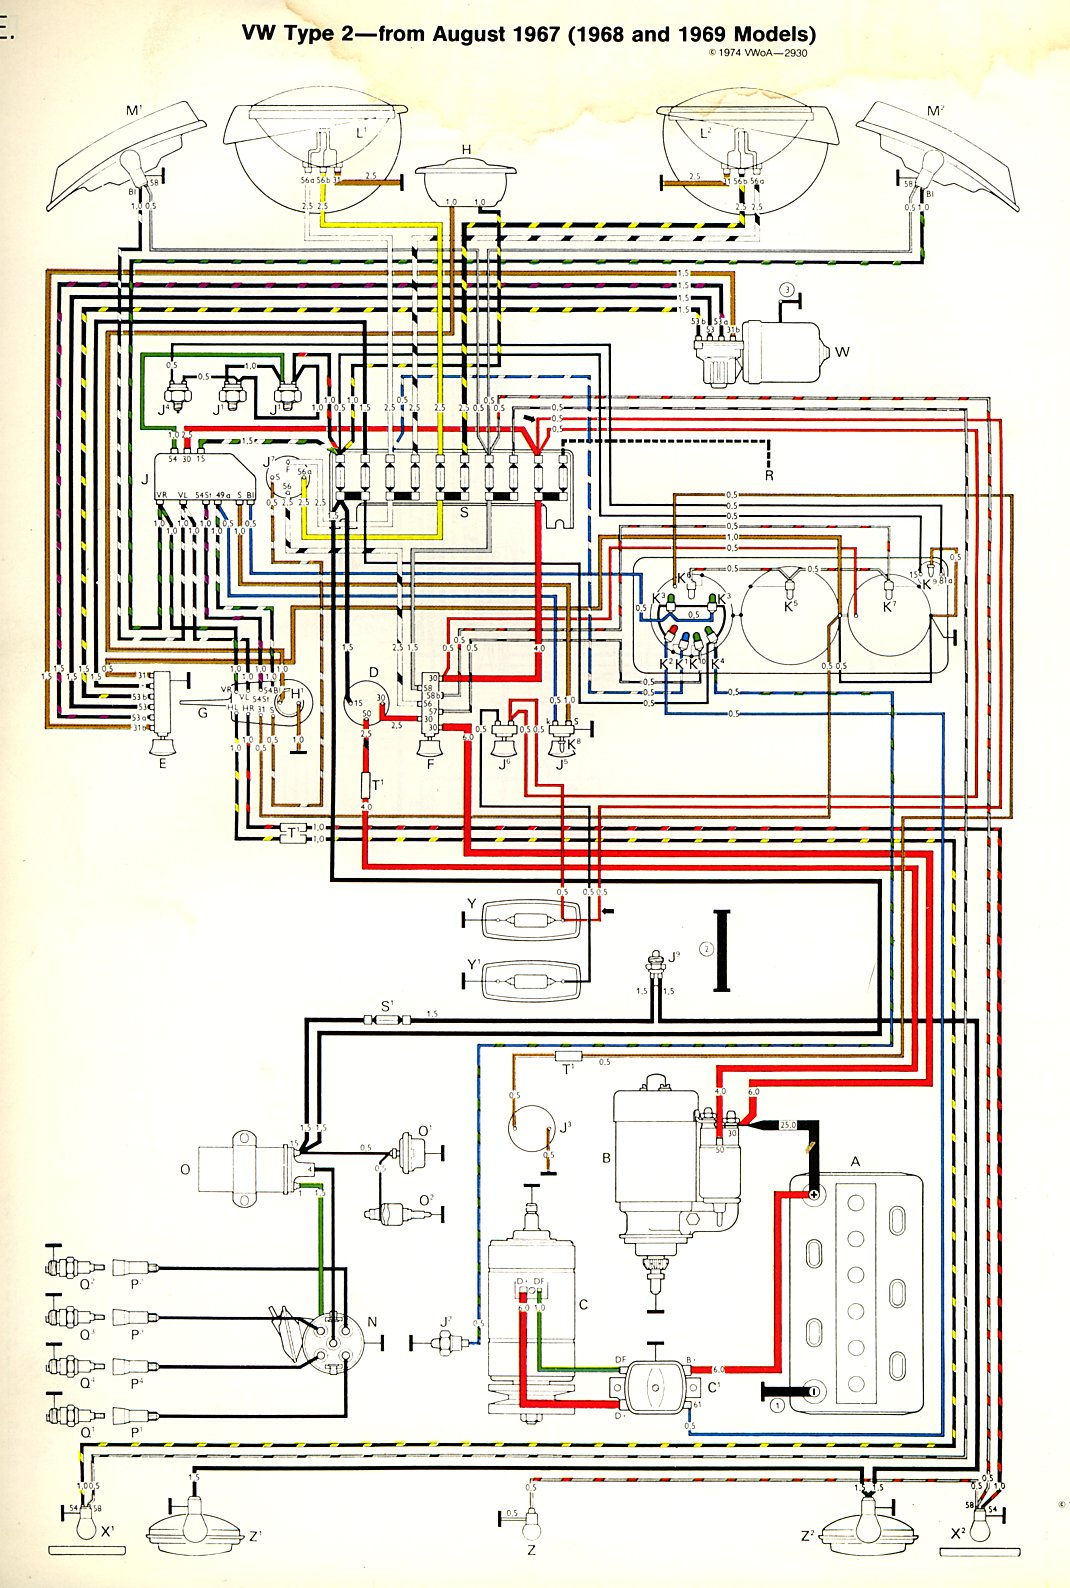 baybus_6869a thesamba com type 2 wiring diagrams vw wiring diagrams at gsmportal.co